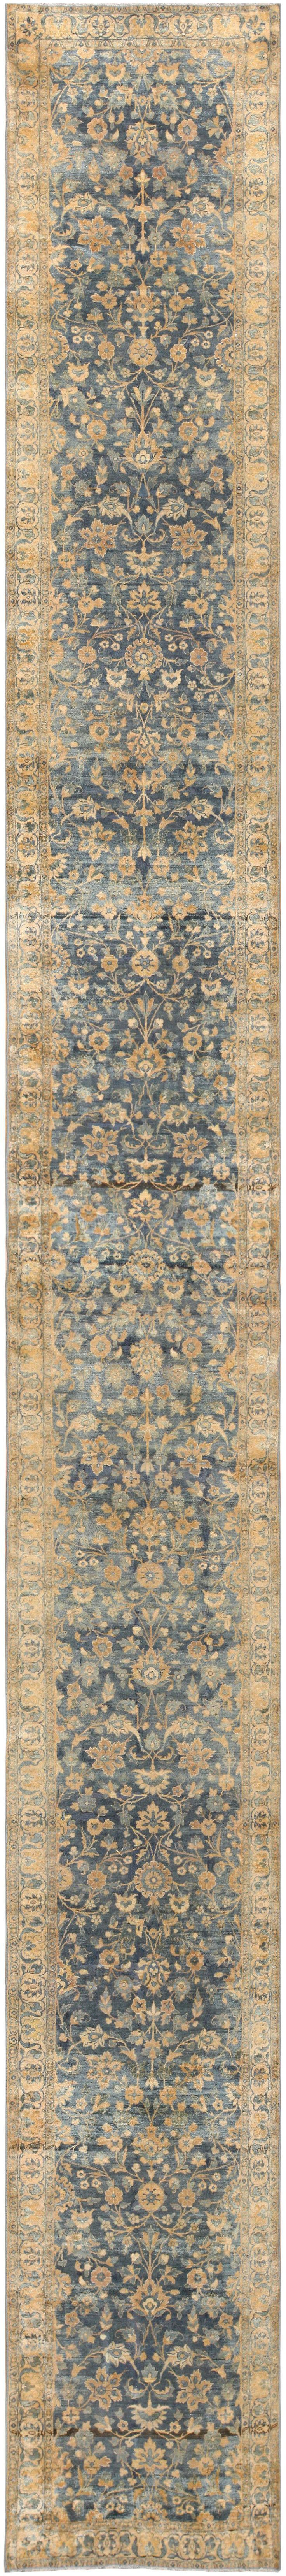 Learn more about our breathtaking Persian Kerman runner, which is available through Nazmiyal Antique Rugs, located in New York City.